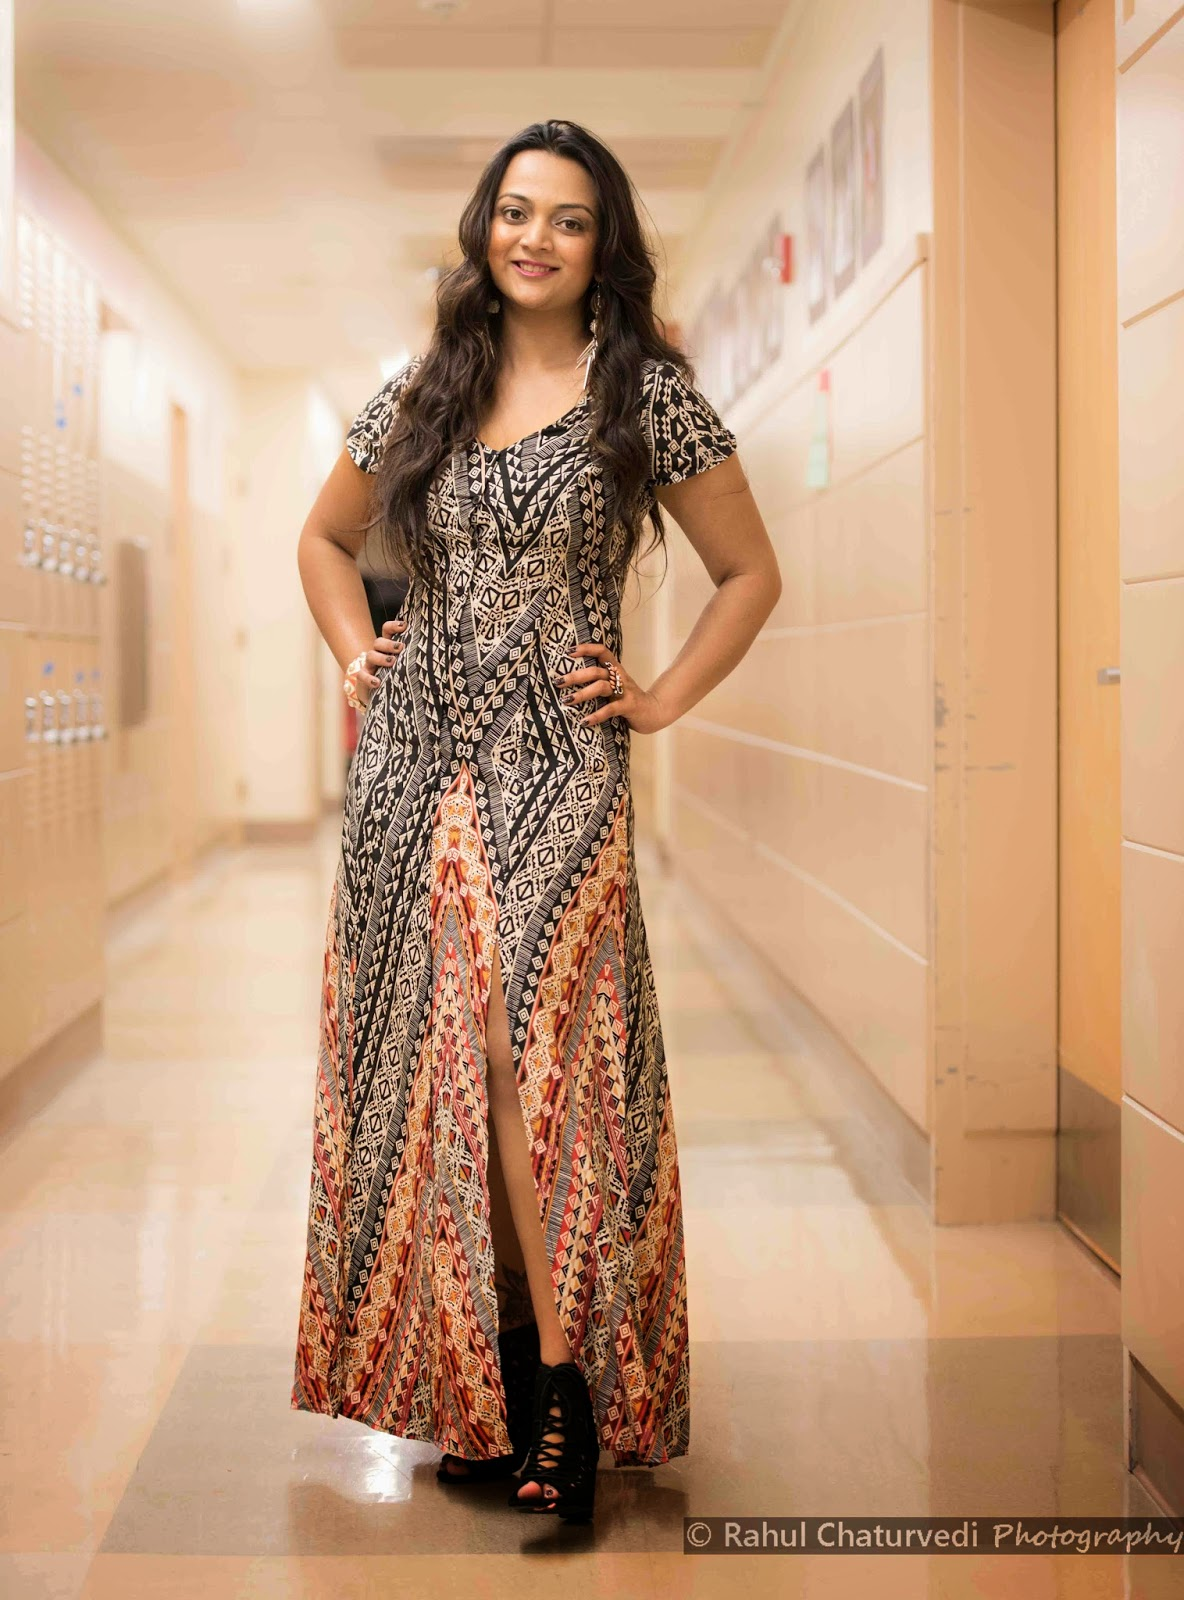 Bohemian style, Bohemian long dress, How to dress up in Bohemian style, Girl in long dress, Seattle fashion blogger, Ananya Kiran